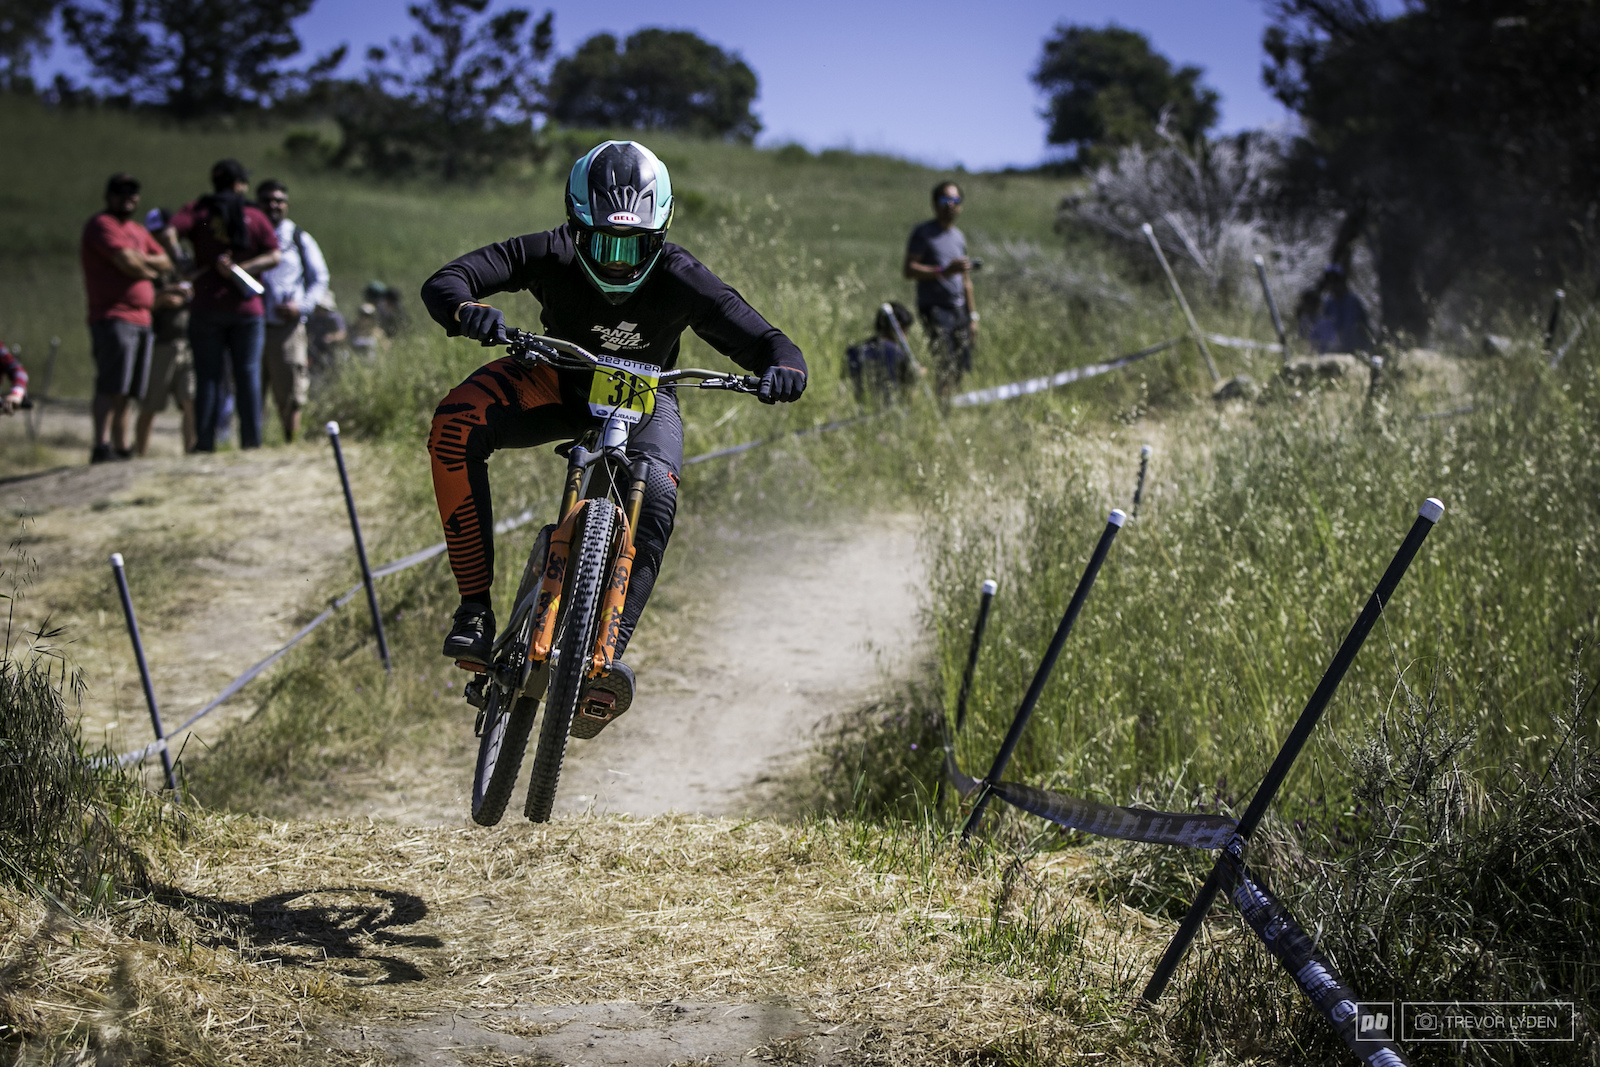 Local rider and second place finisher Kiran Mackinnon